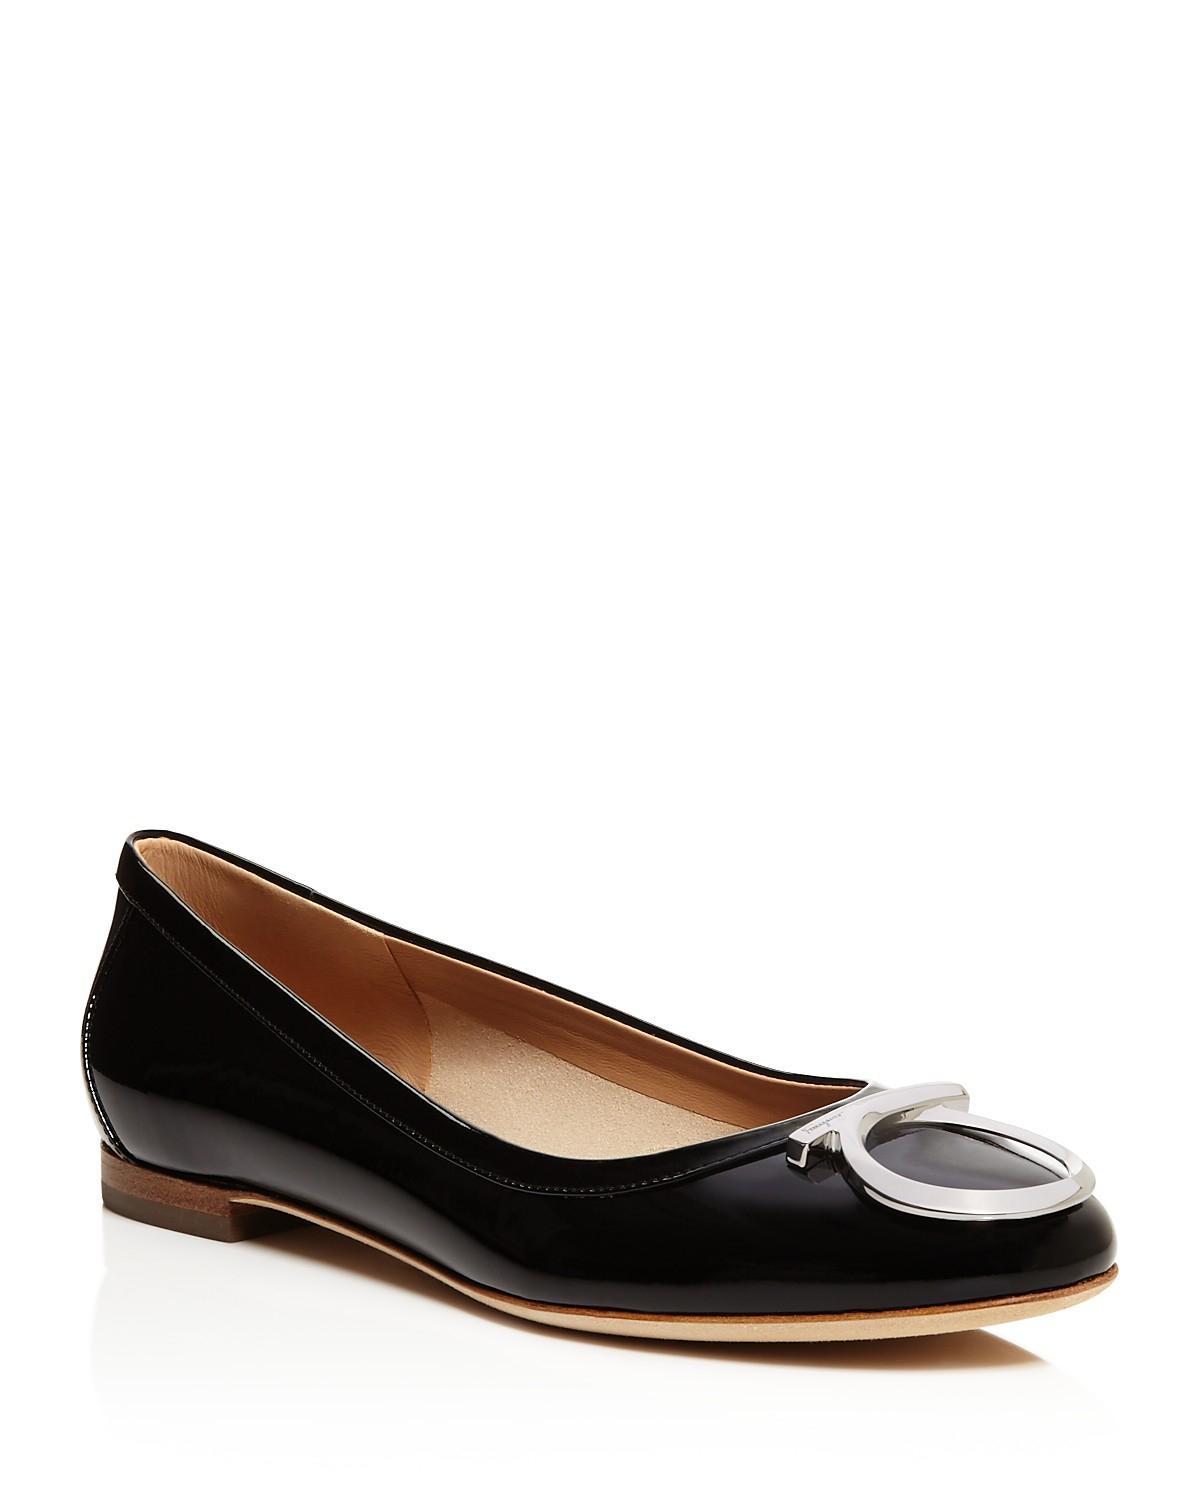 cheap sale best prices Salvatore Ferragamo Gancini Round-Toe Flats with mastercard sale online discount amazing price cost for sale discount exclusive Pv40Y